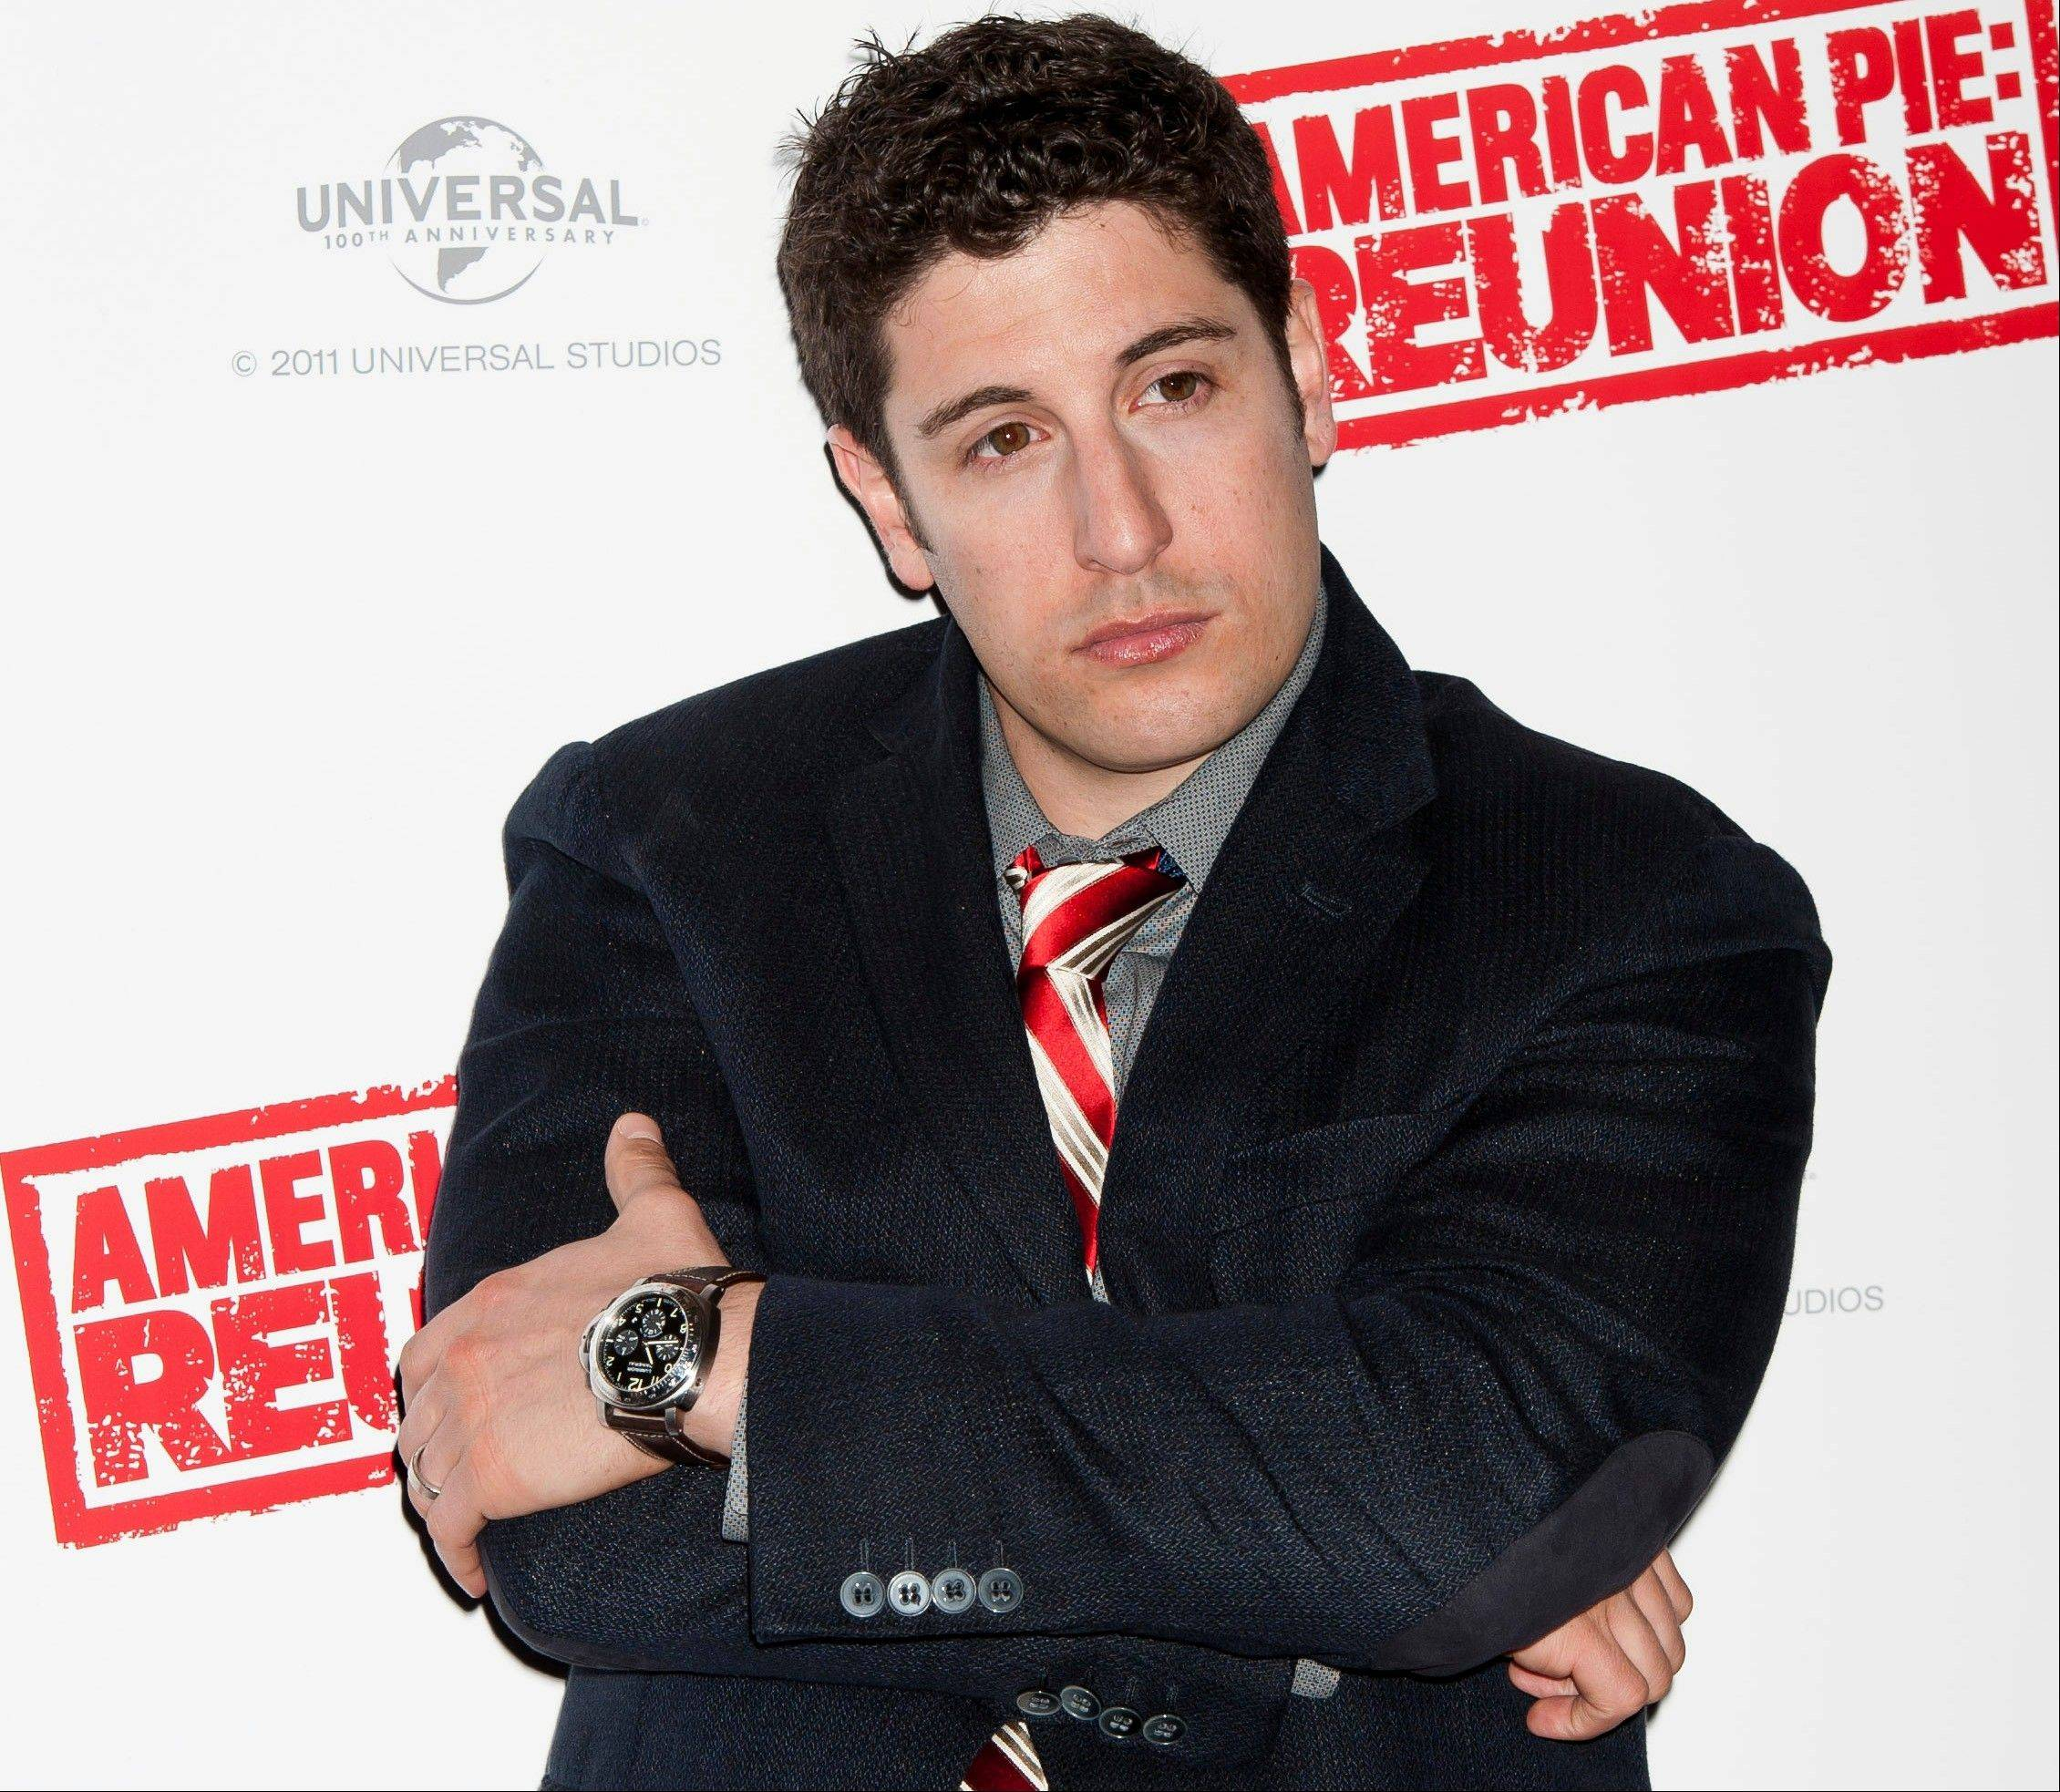 Jason Biggs is getting some flak for his vulgar tweets, but the actor doesn't seem to mind. Recently, he got into some trouble for tweeting about the wives of the Republican presidential candidates.